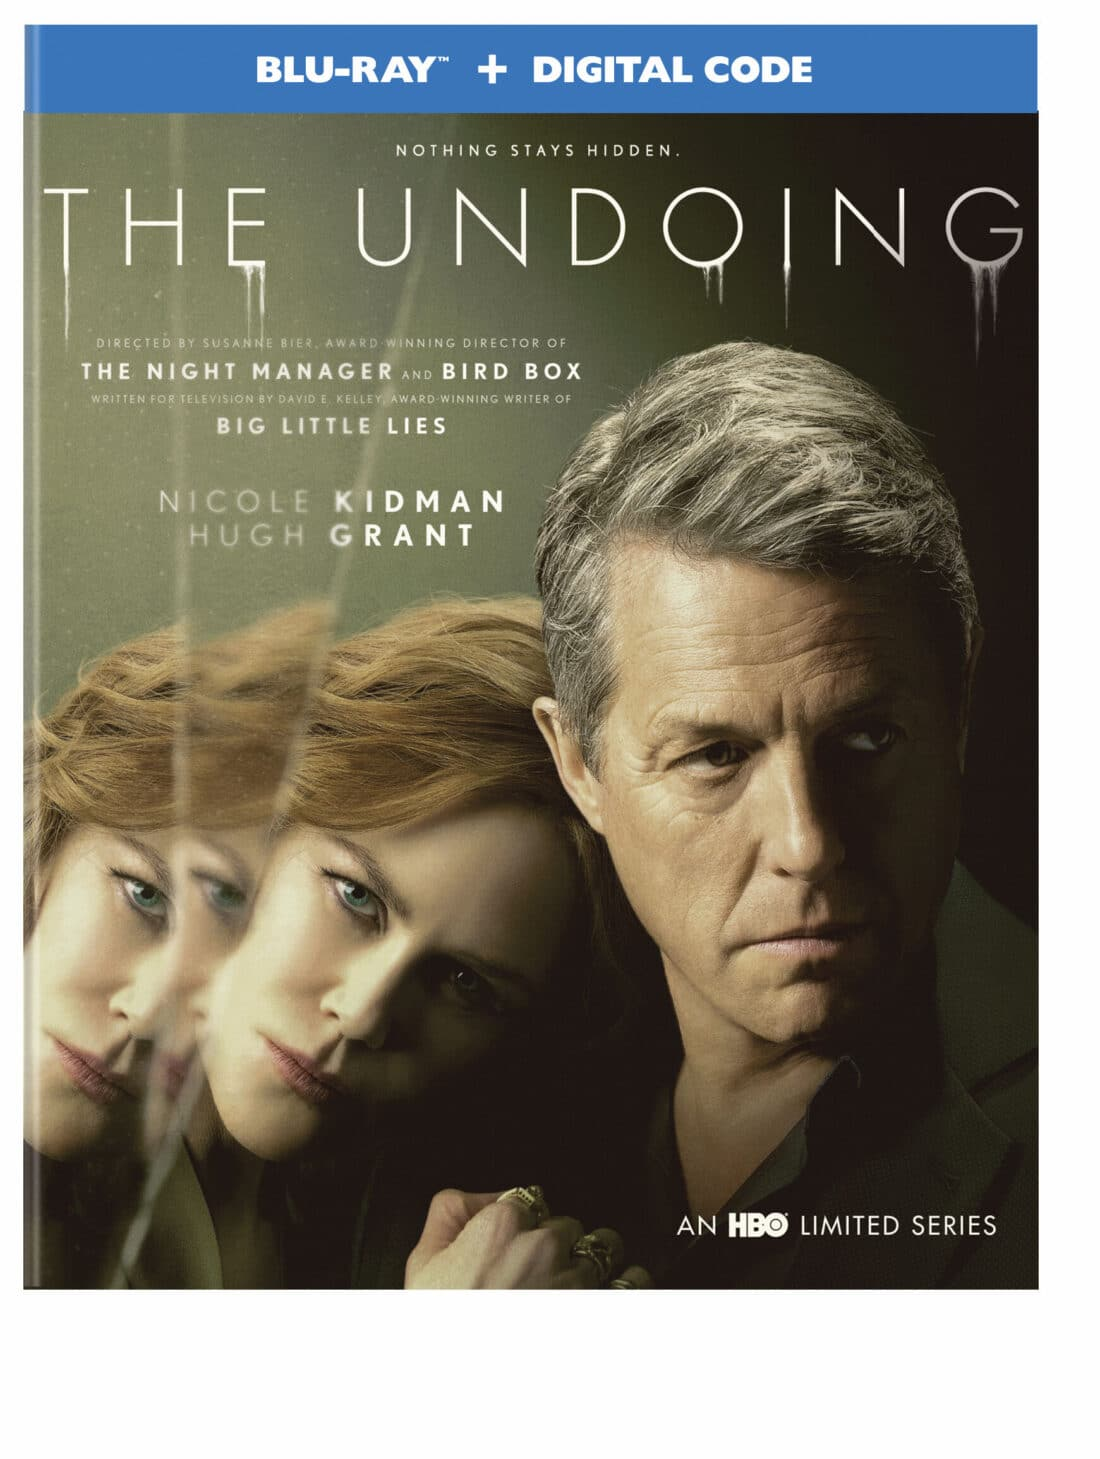 The Undoing An HBO Limited Series. Nothing stays hidden! The highly anticipated six-part limited series, The Undoing; An HBO Limited Series from Warner Bros. Home Entertainment arrives on Blu-ray and DVD on March 23, 2021.